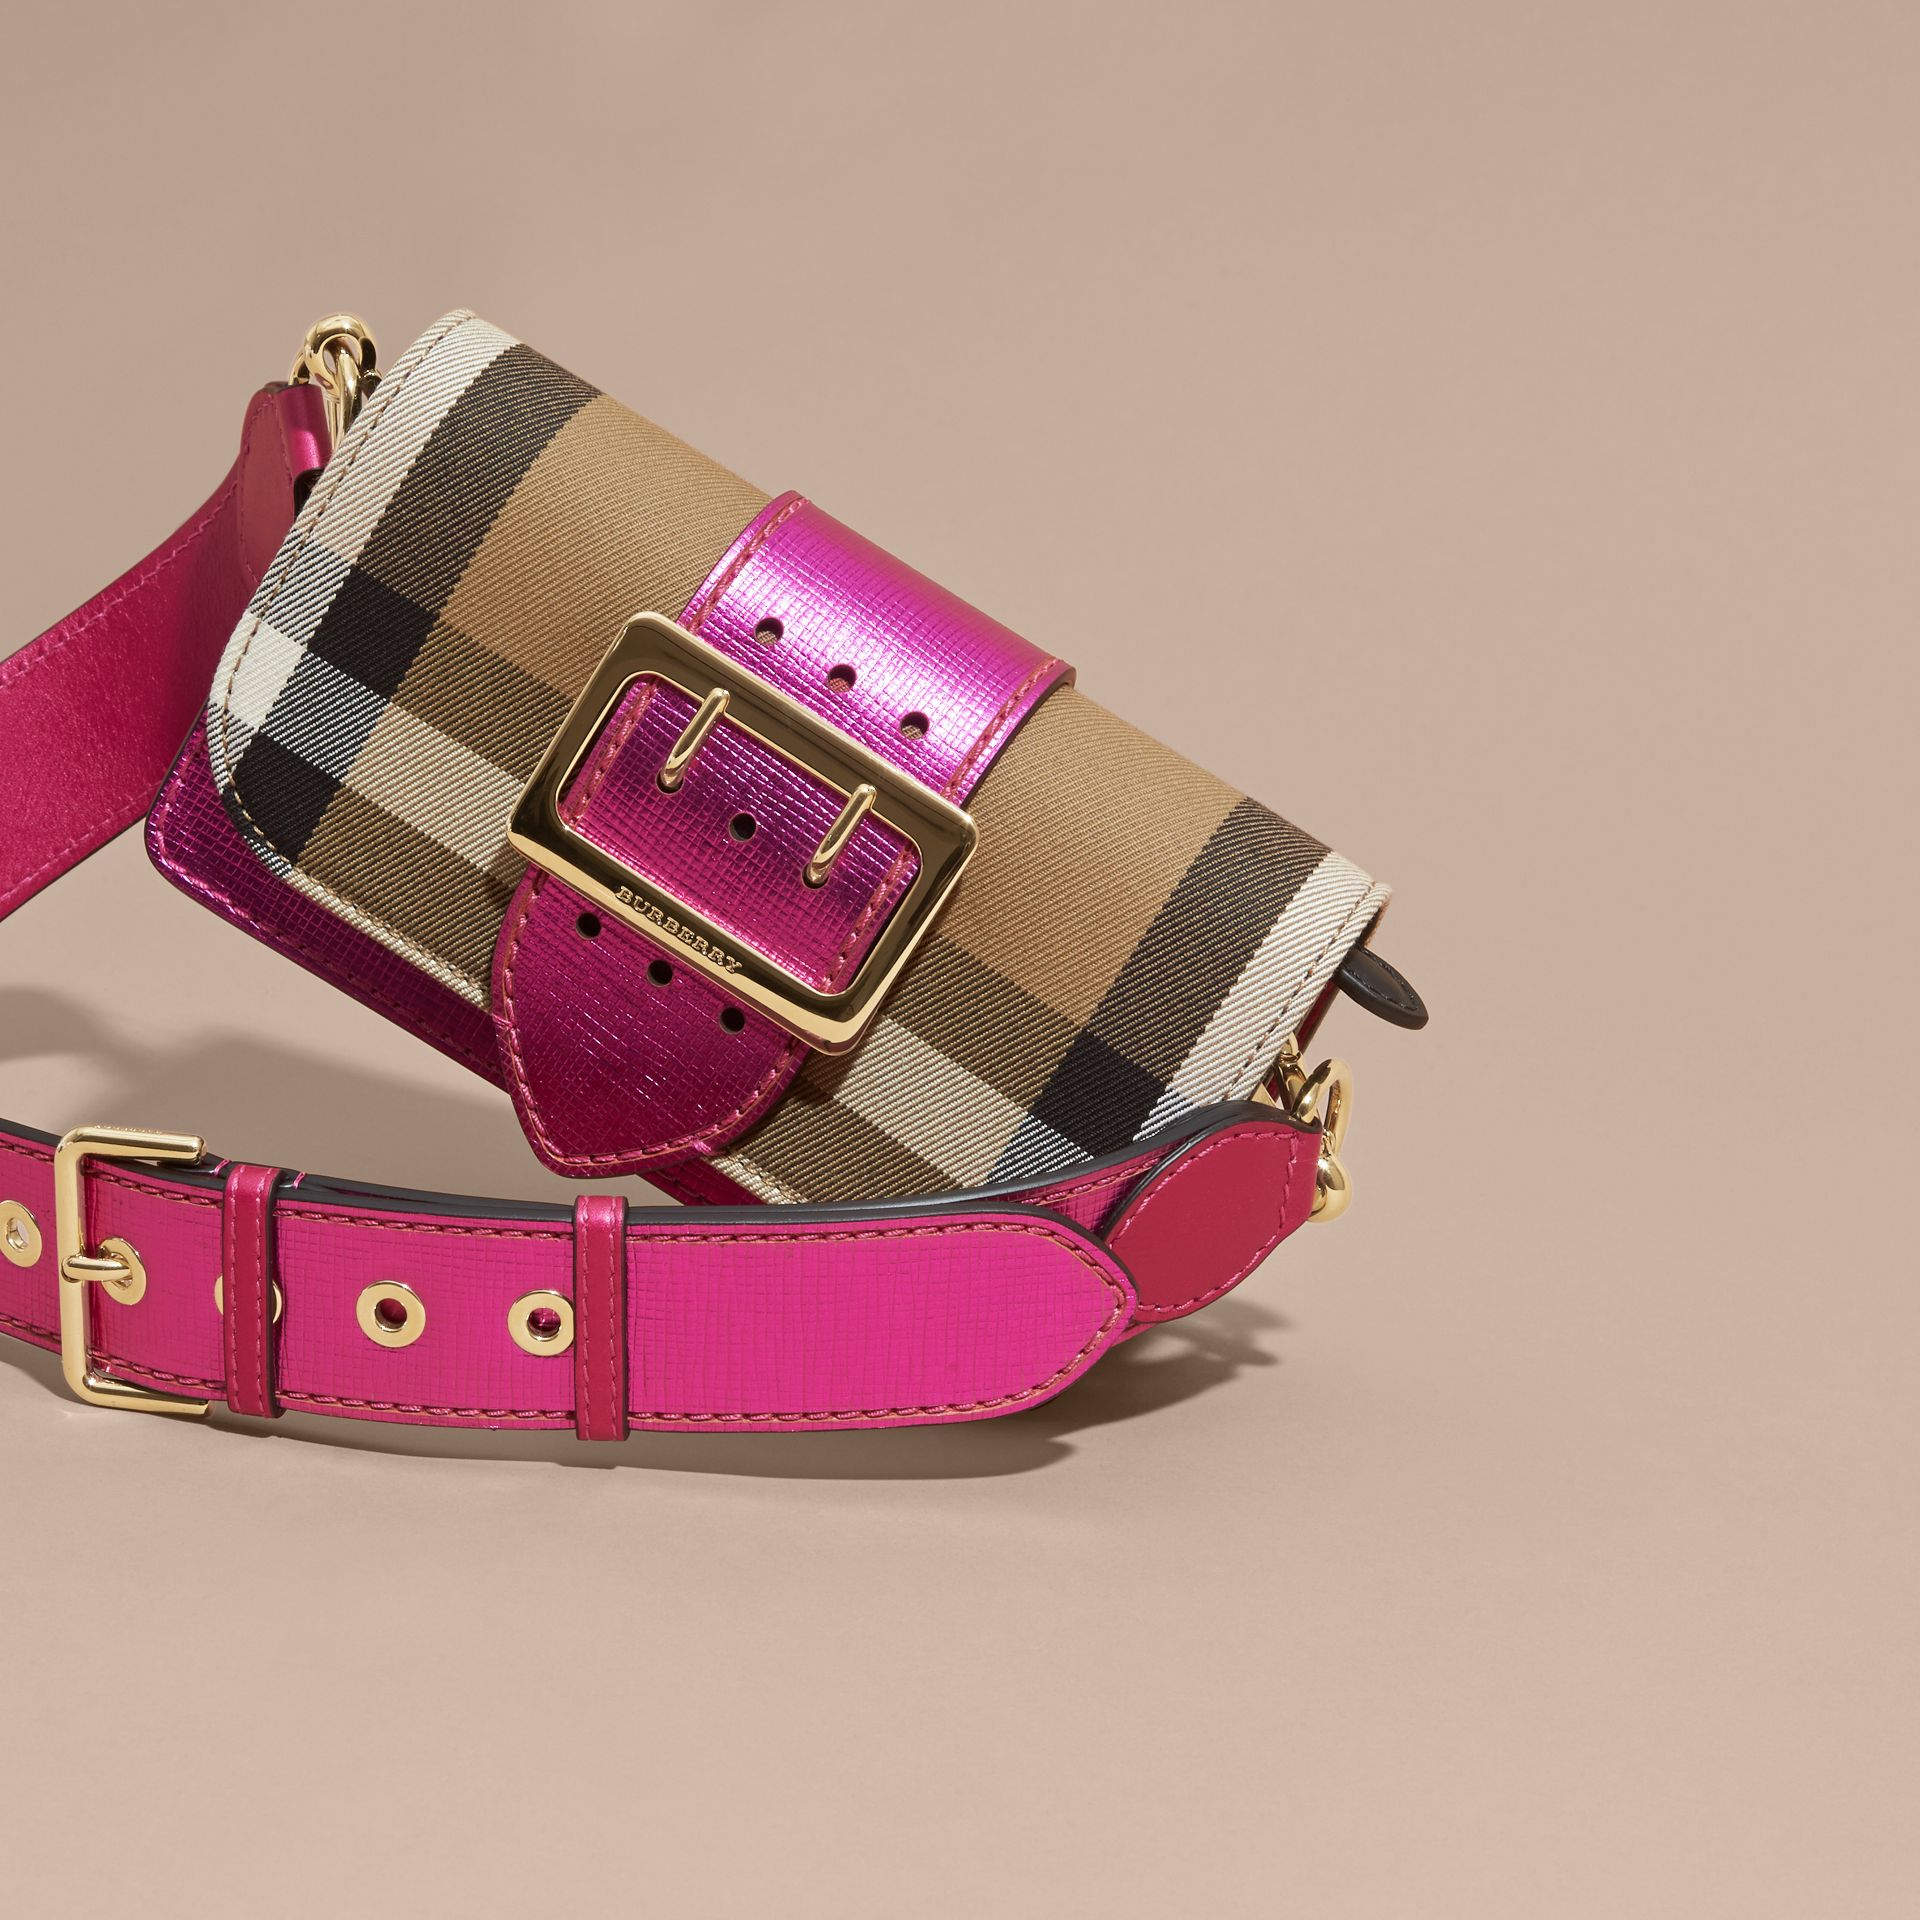 Bright pink The Small Buckle Bag in House Check and Leather Bright Pink - gallery image 8